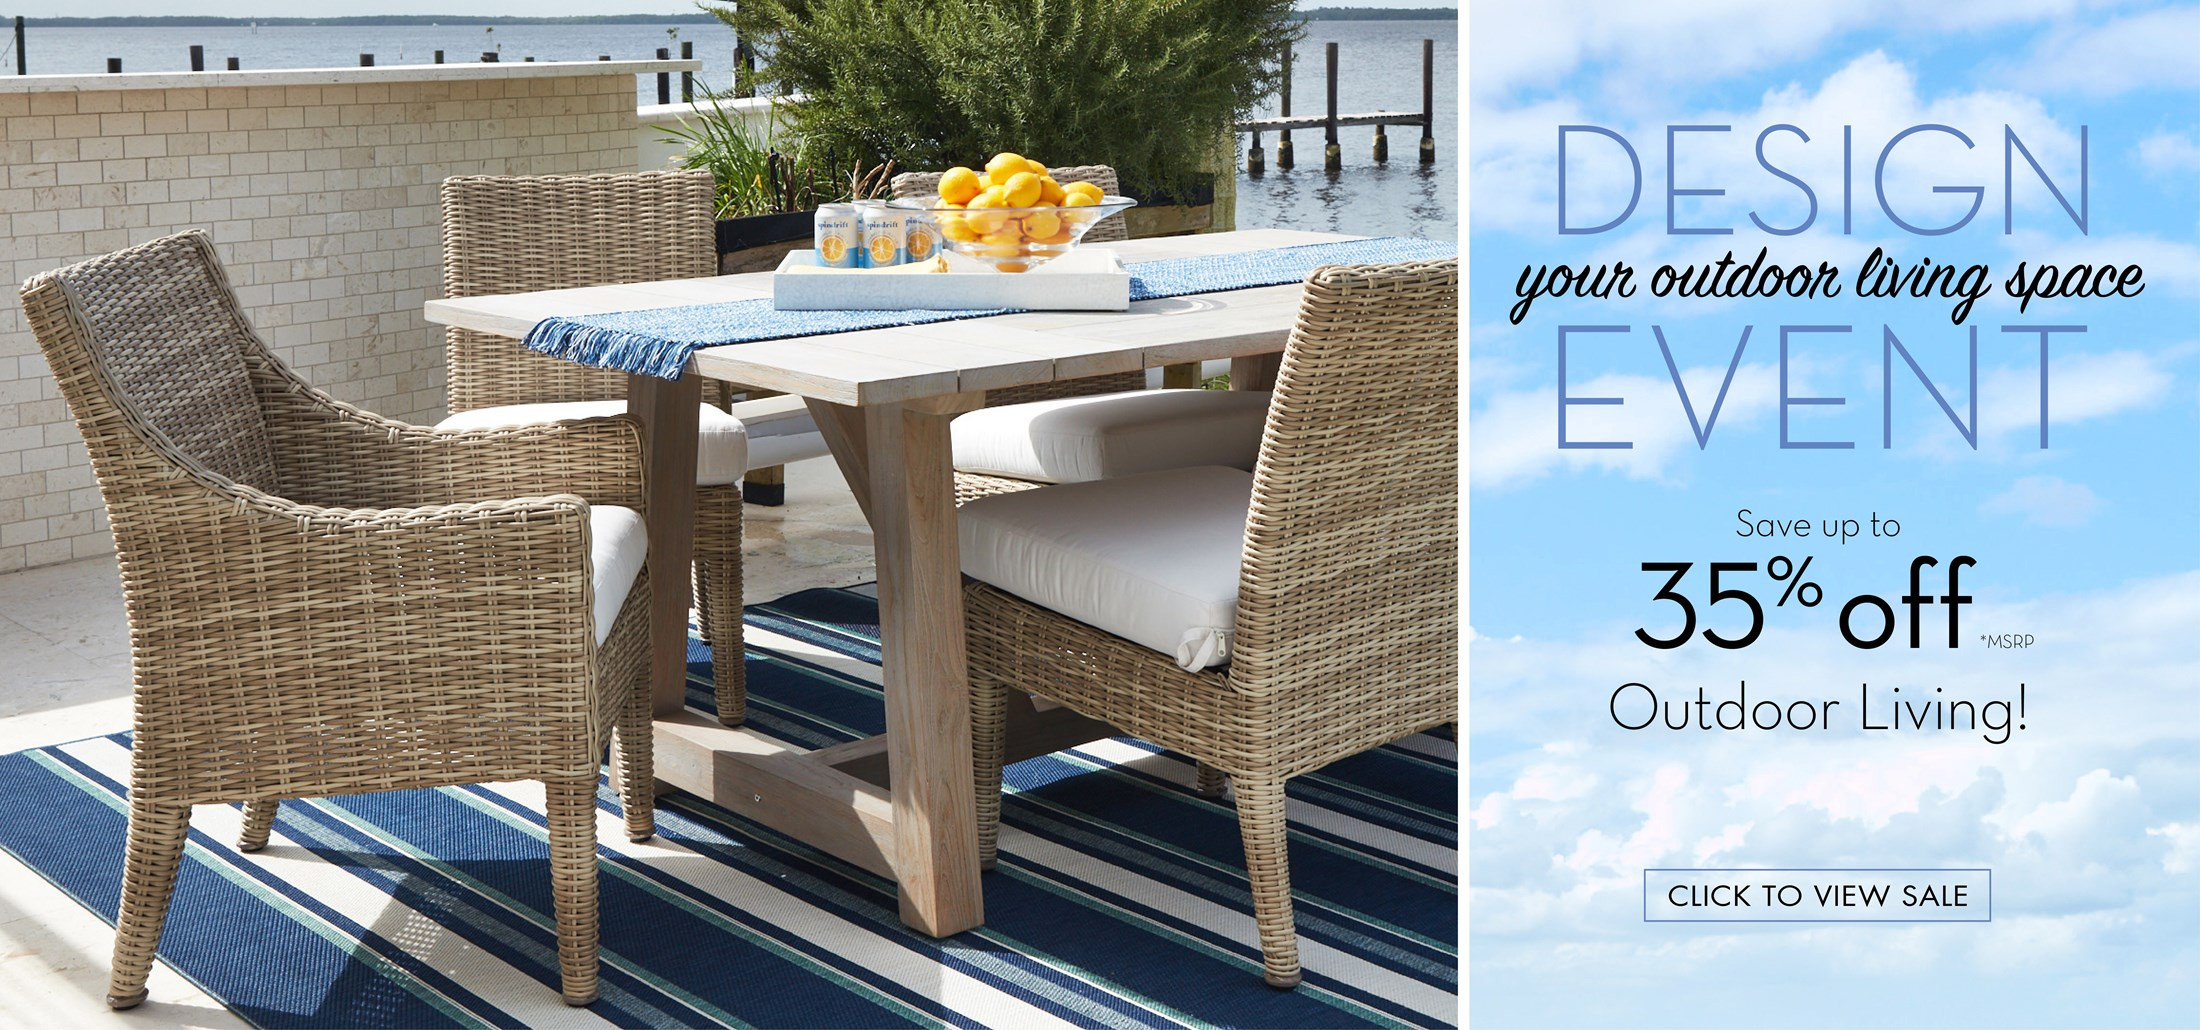 Design Your Outdoor Space